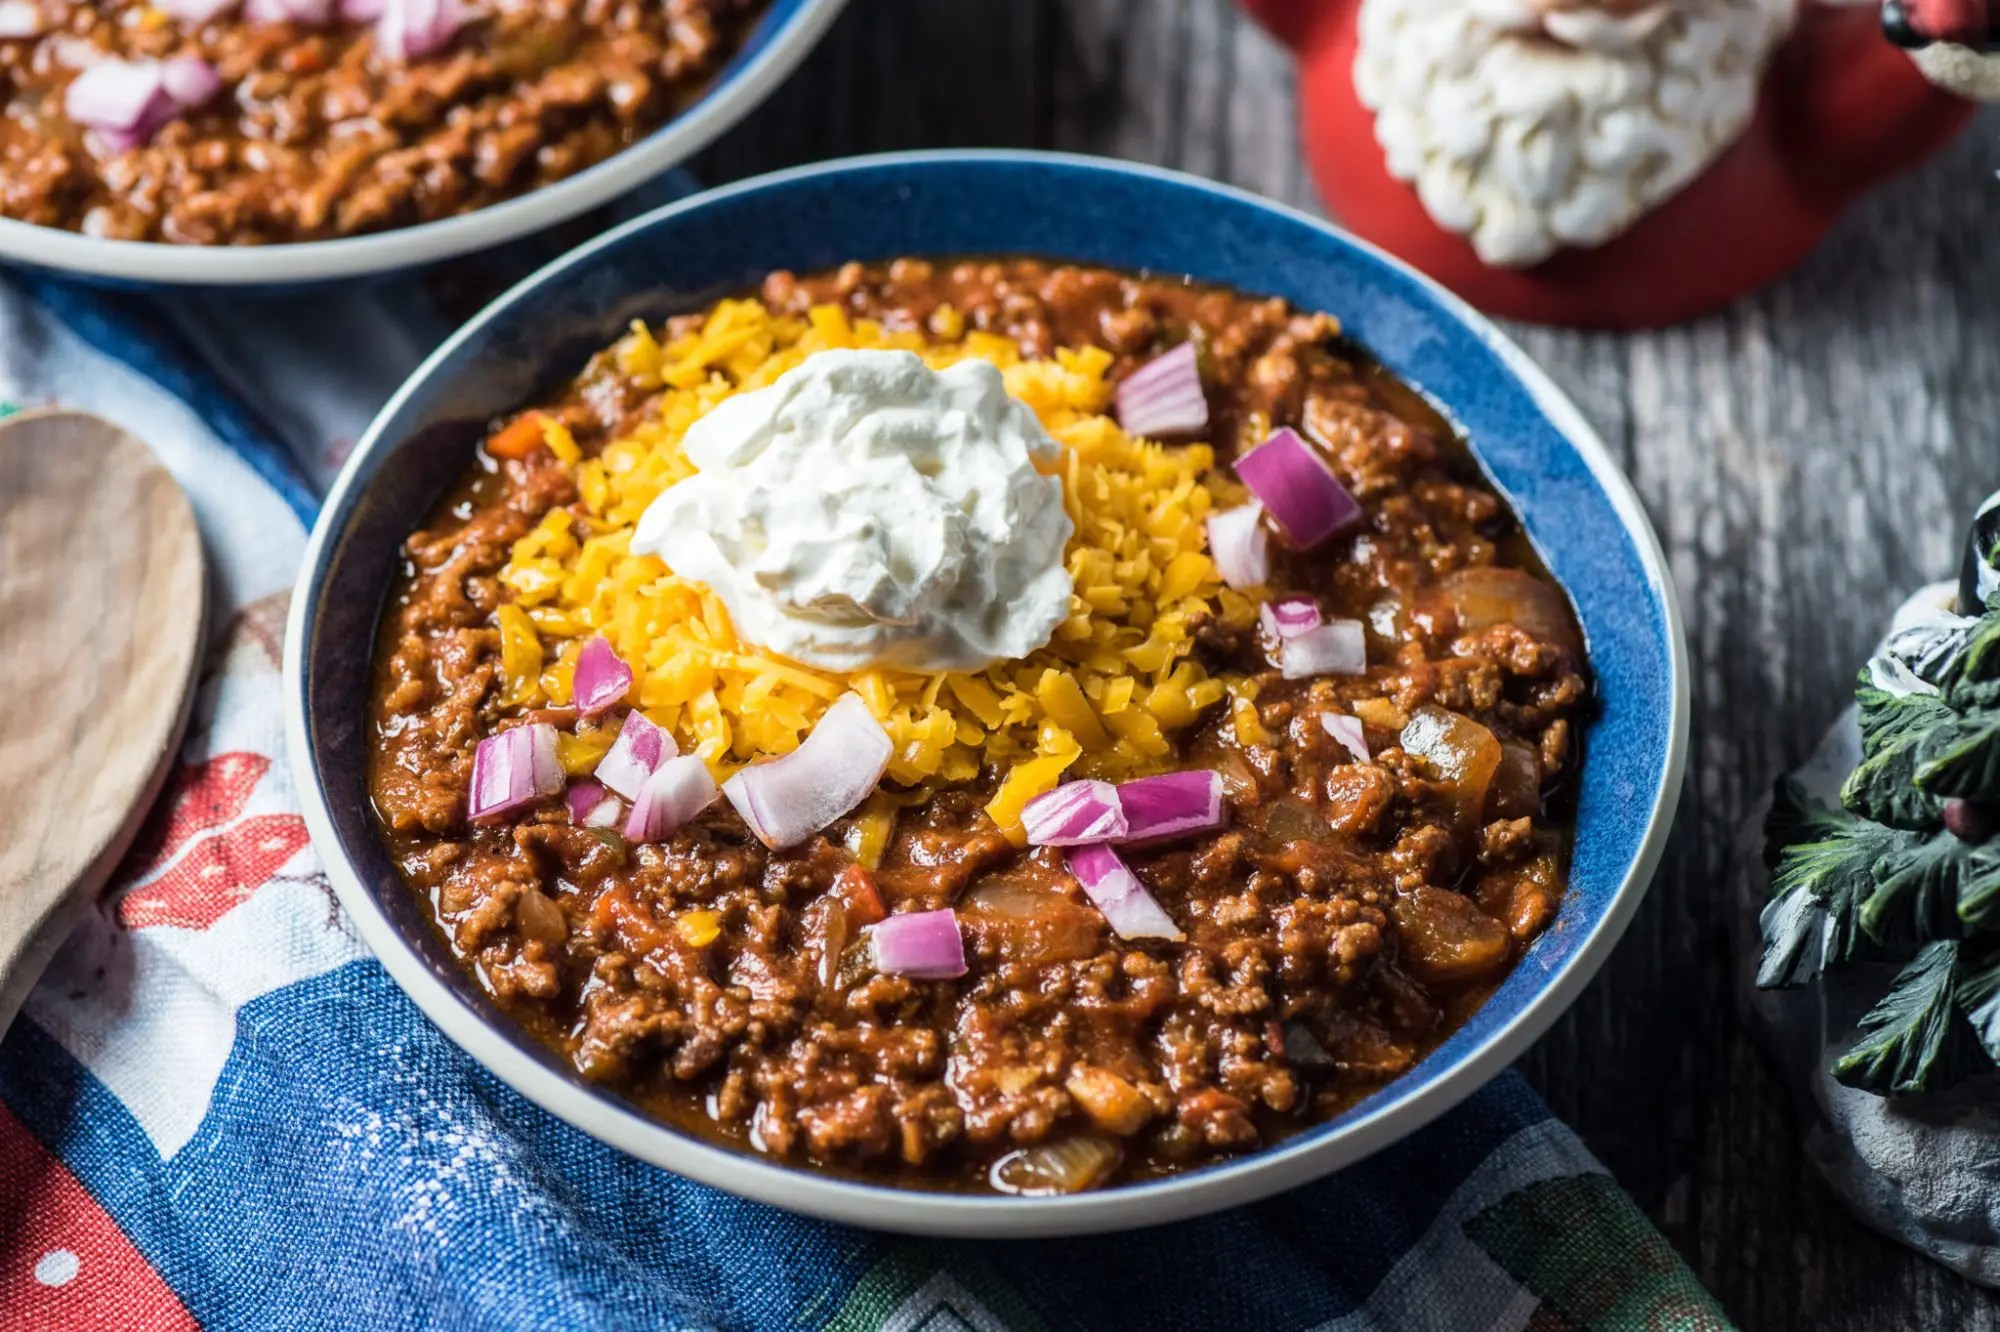 Low Carb Texas Chili Tasty Low Carb